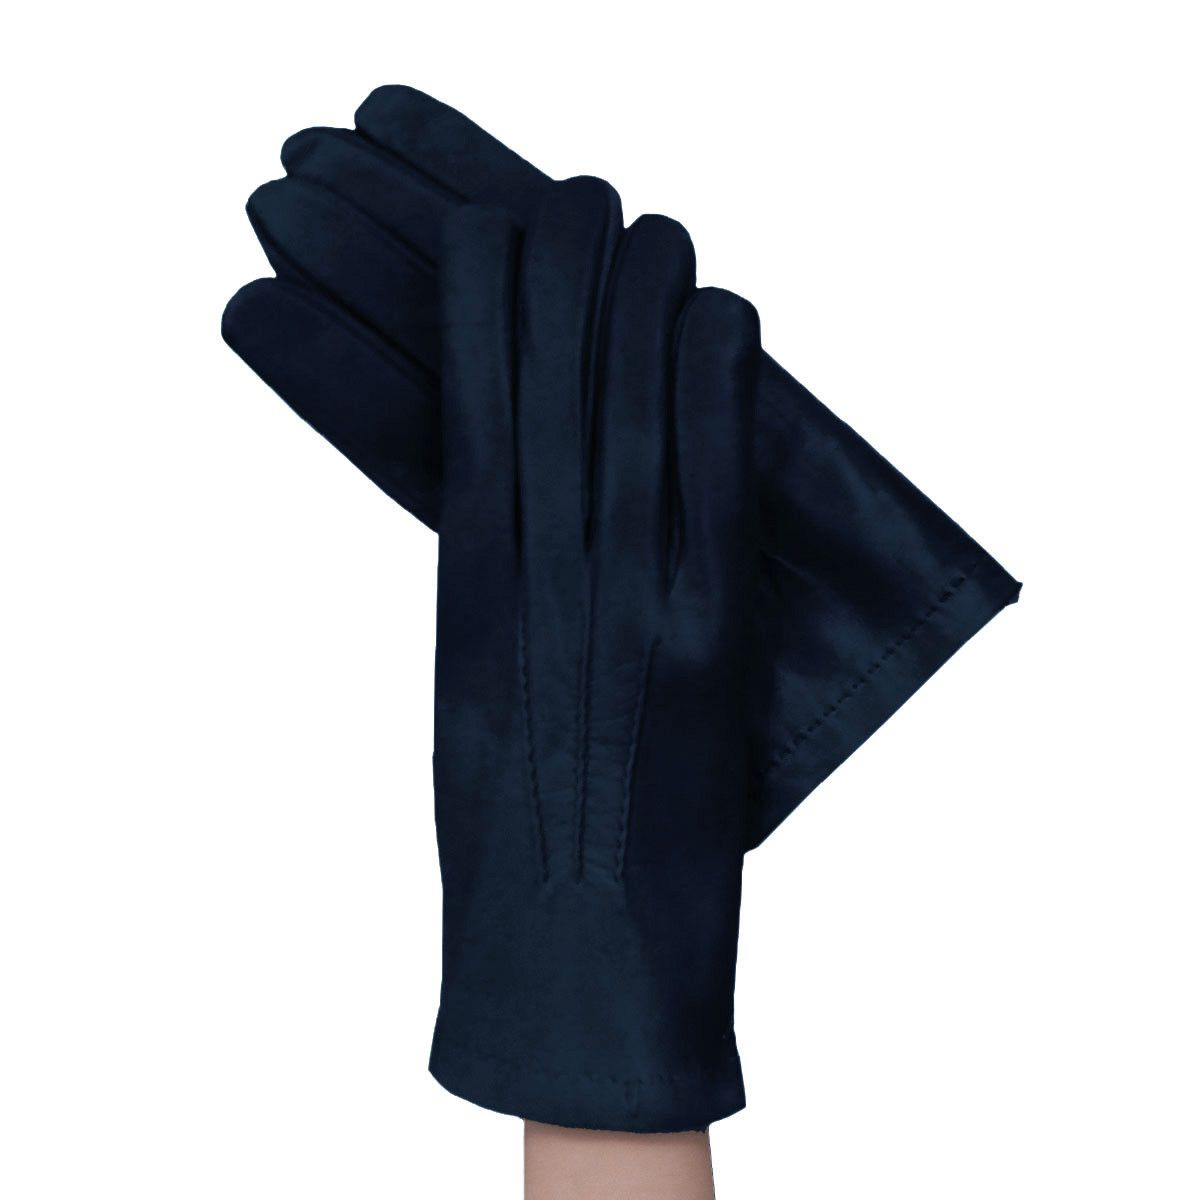 Made of genuine Italian kidskin leather, these men's navy blue leather gloves with outside stitching are lined with soft and warm cashmere. The ultimate navy blue leather dress gloves for men. - 100%